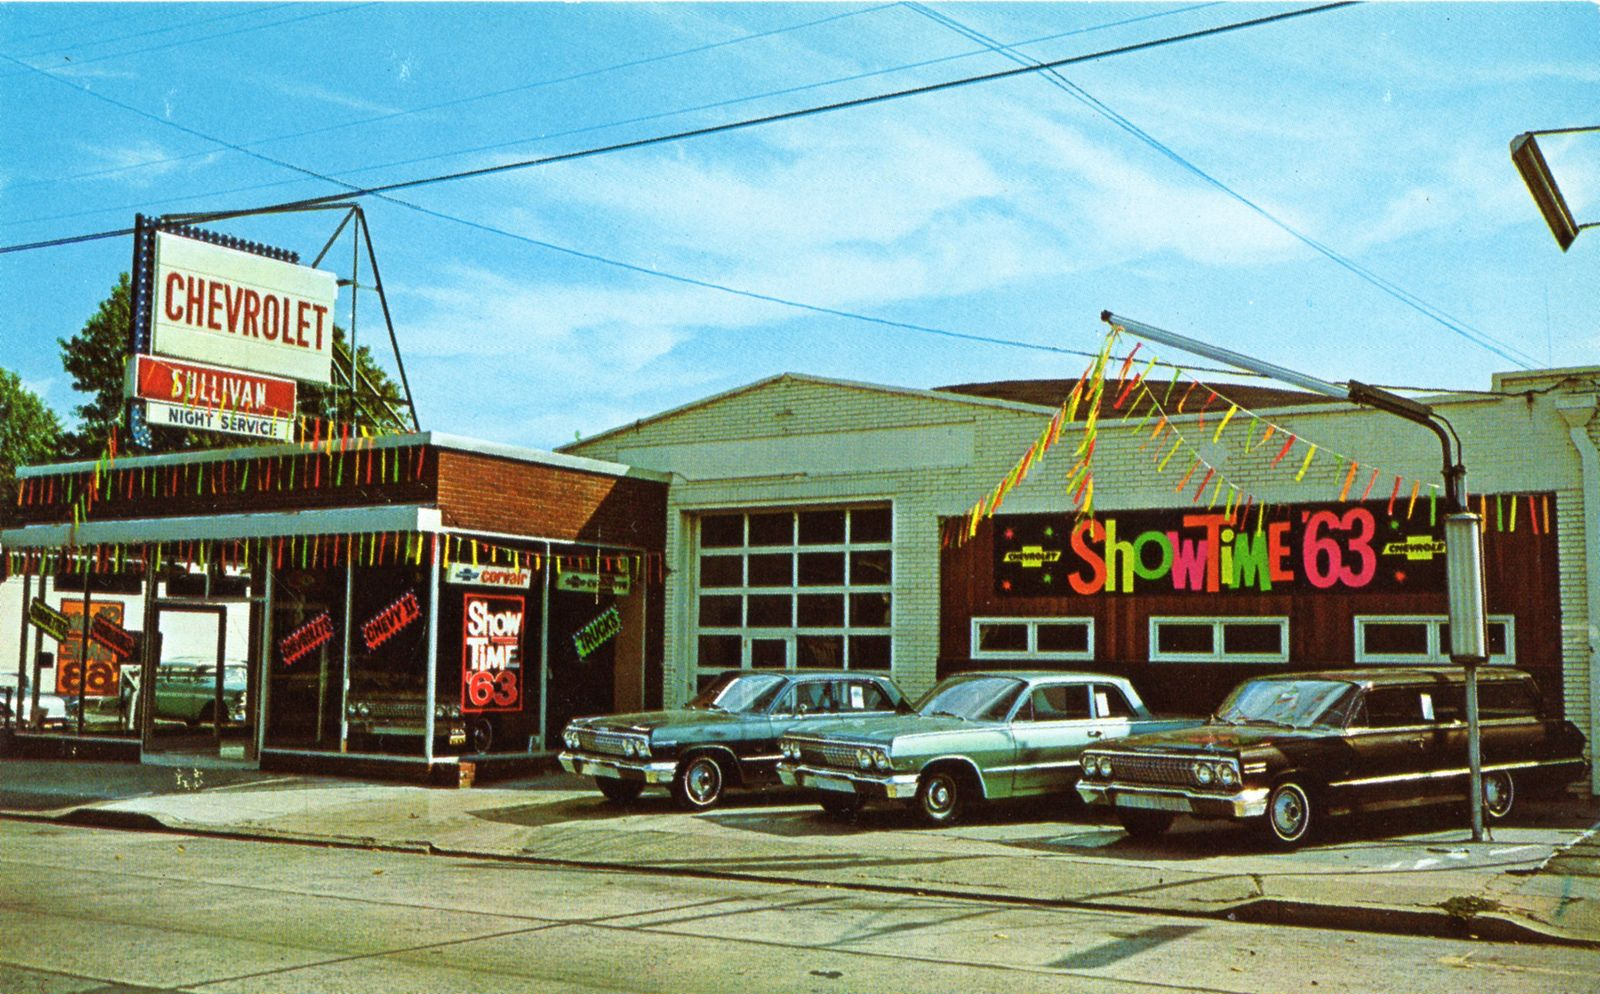 1963 Sullivan Chevrolet Dealership, Roselle Park, New Jersey